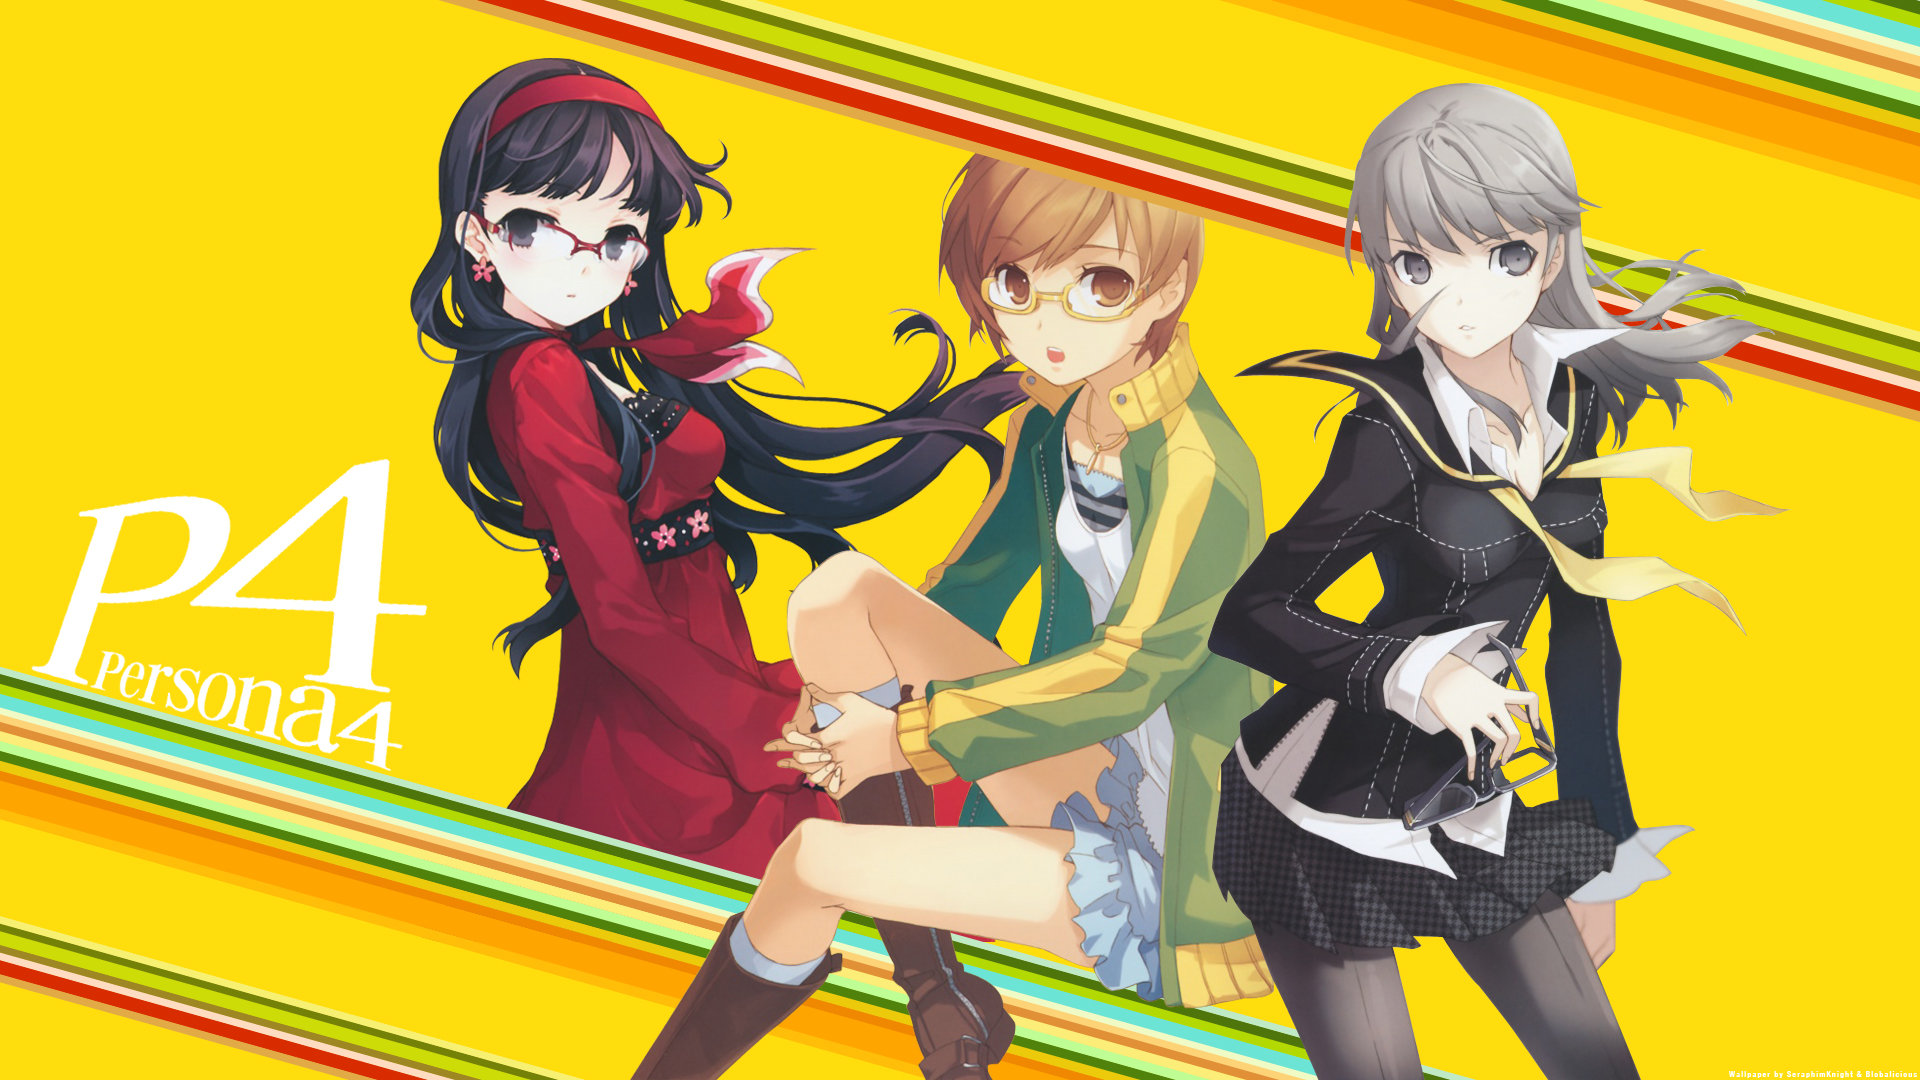 Best Persona 4 Wallpaper Id114195 For High Resolution 1080p Pc